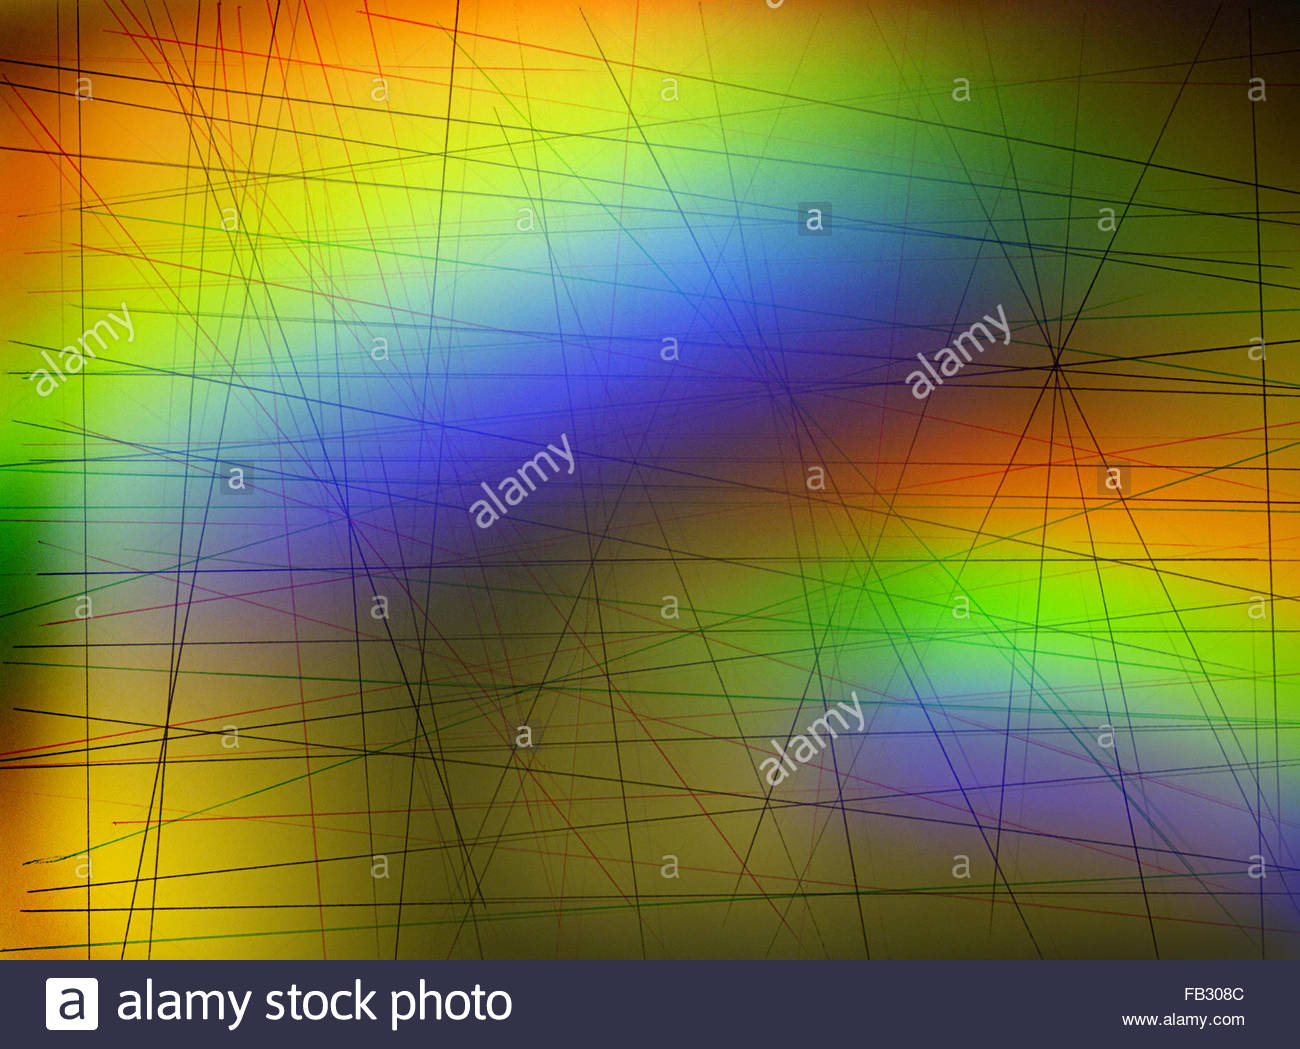 Abstract network of intersecting lines on rainbow background - Stock Image